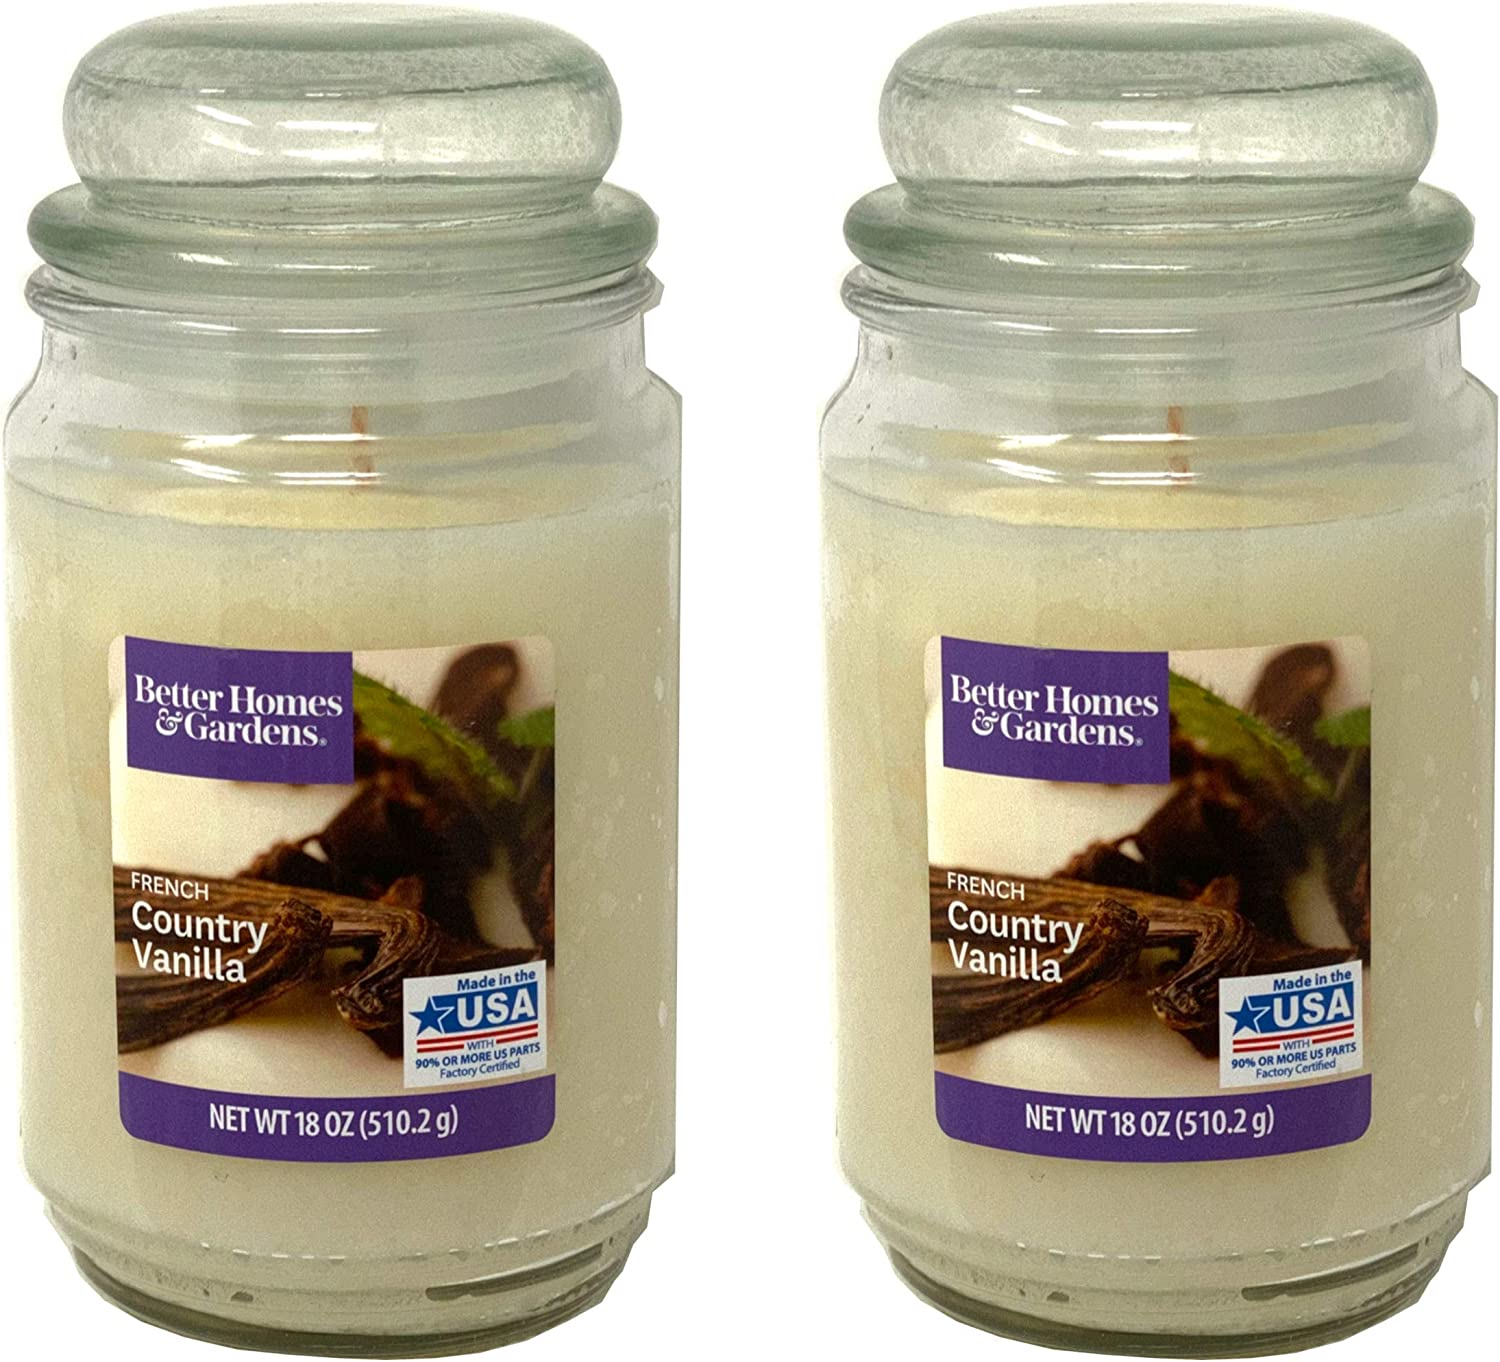 Better Homes Gardens 18oz Scented Candle, French Country Vanilla 2-Pack